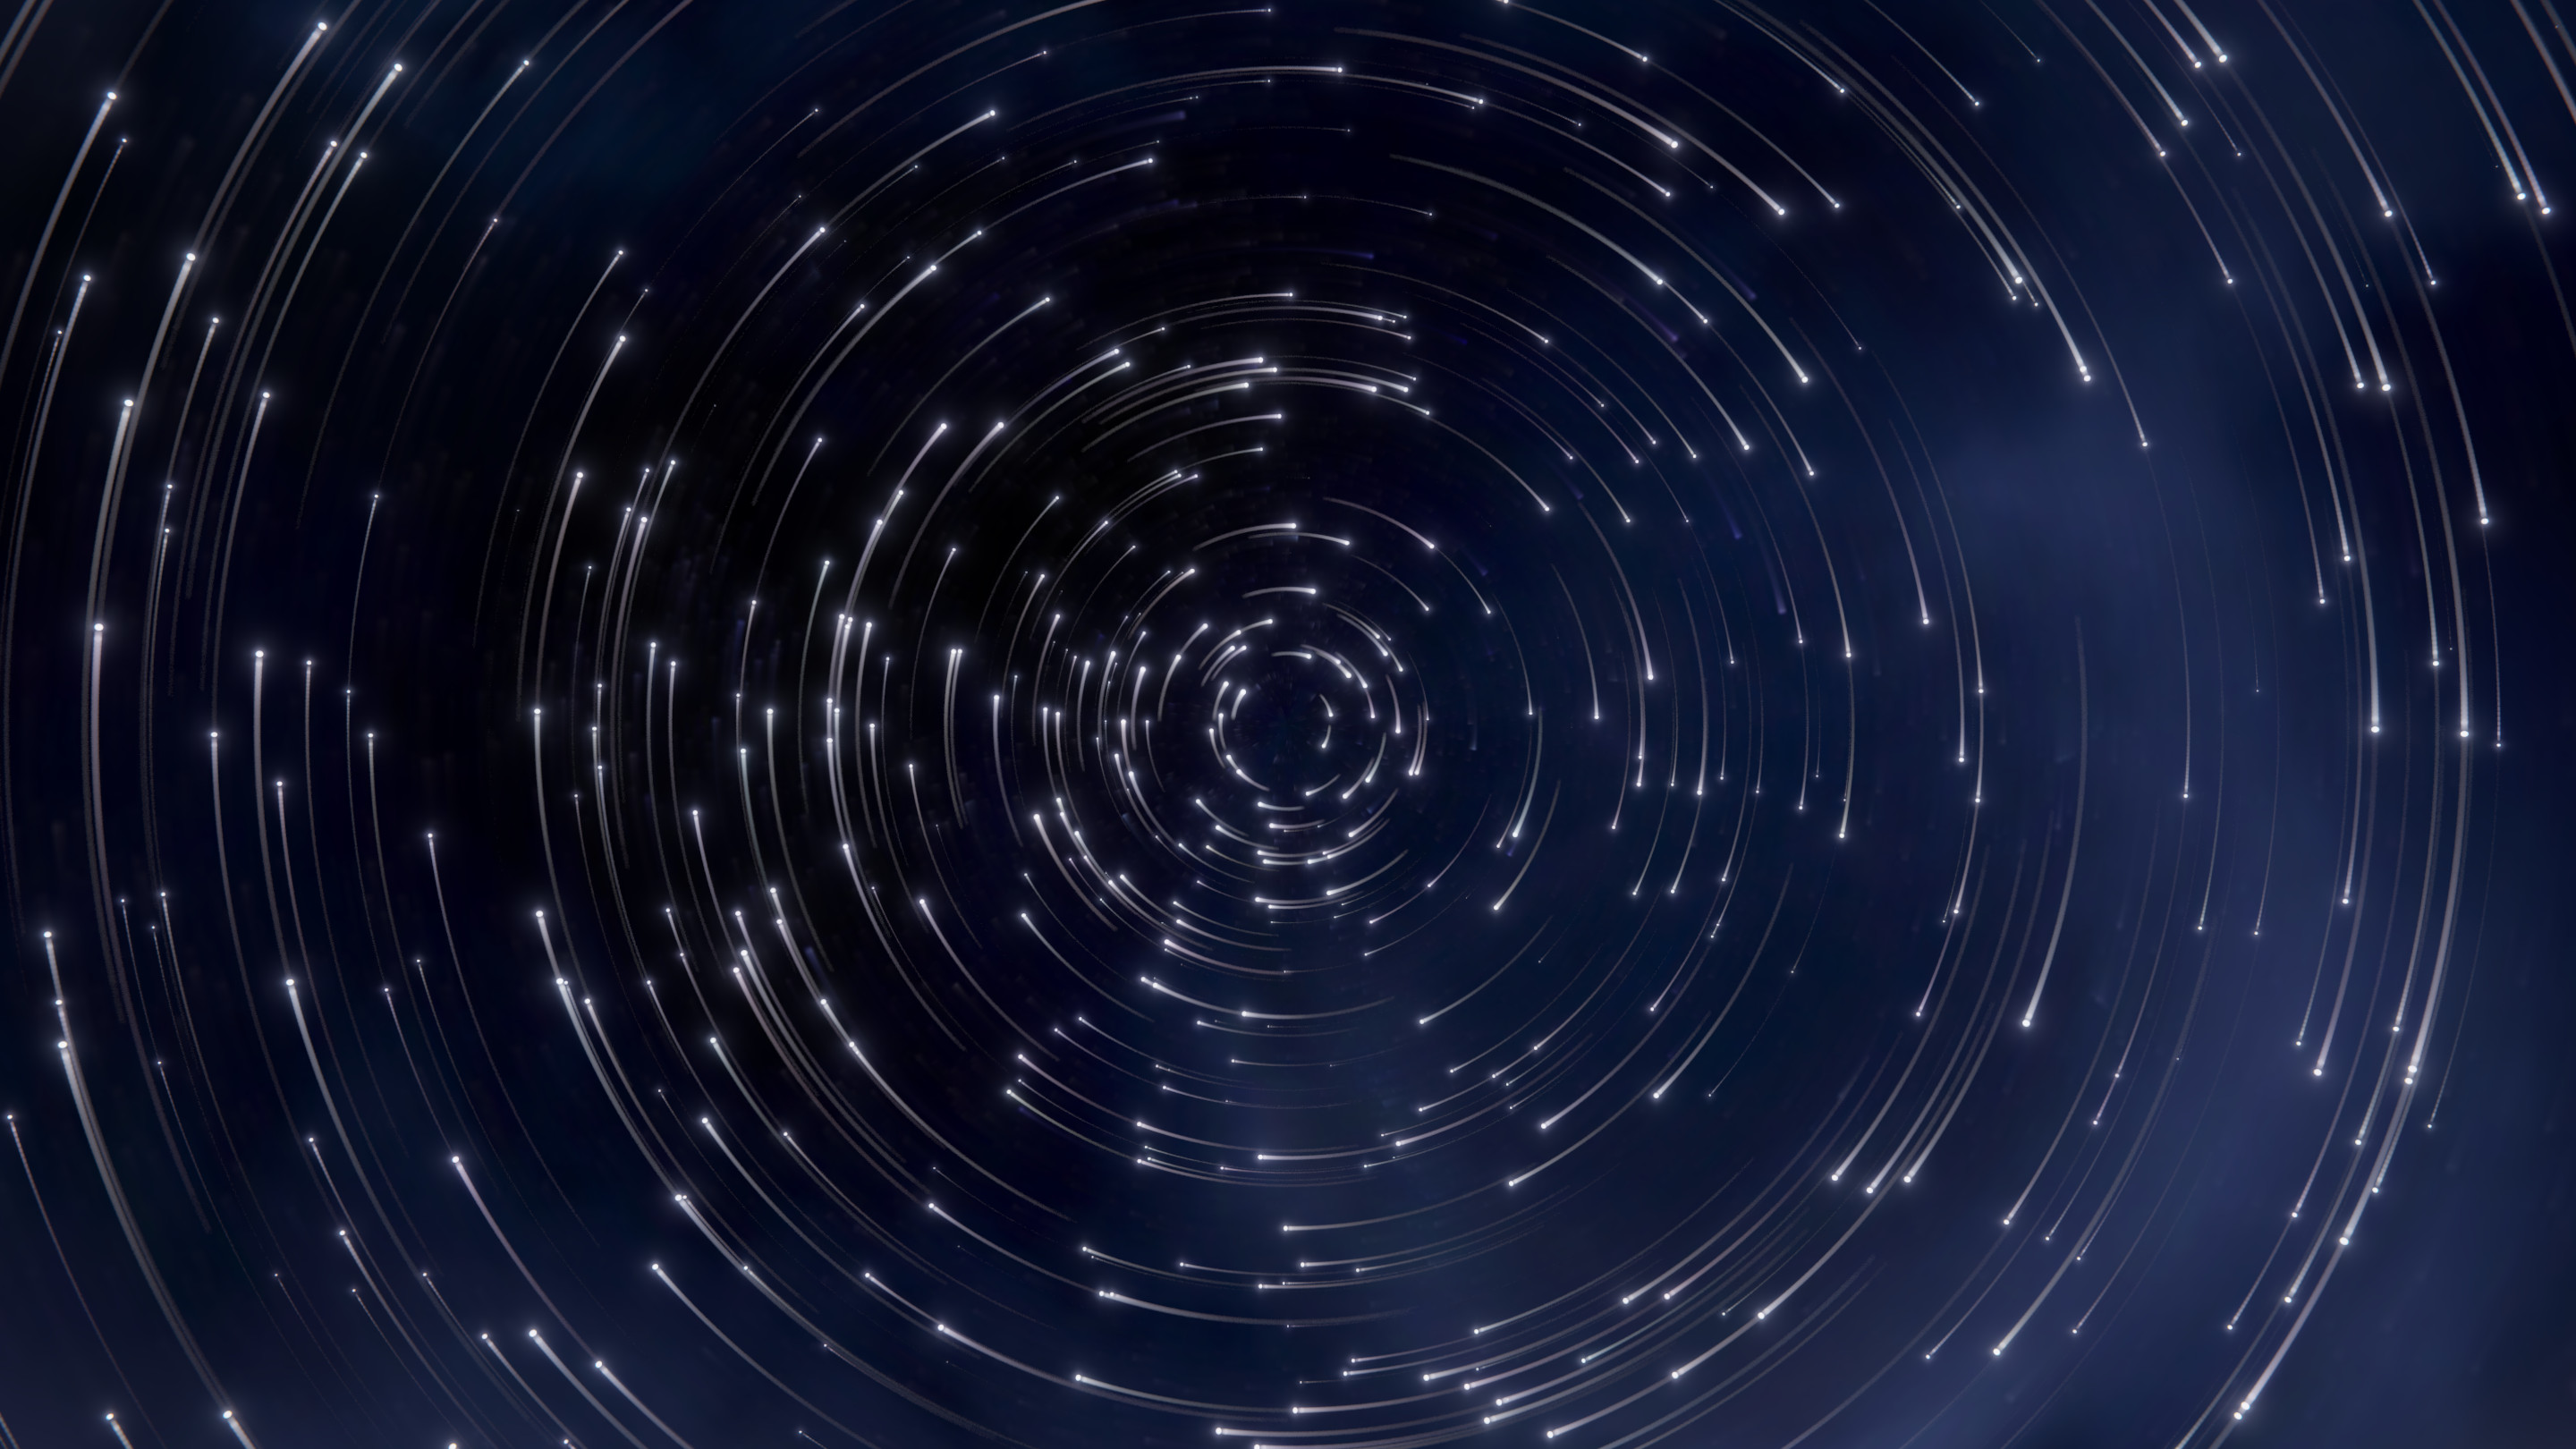 Whirling Stars